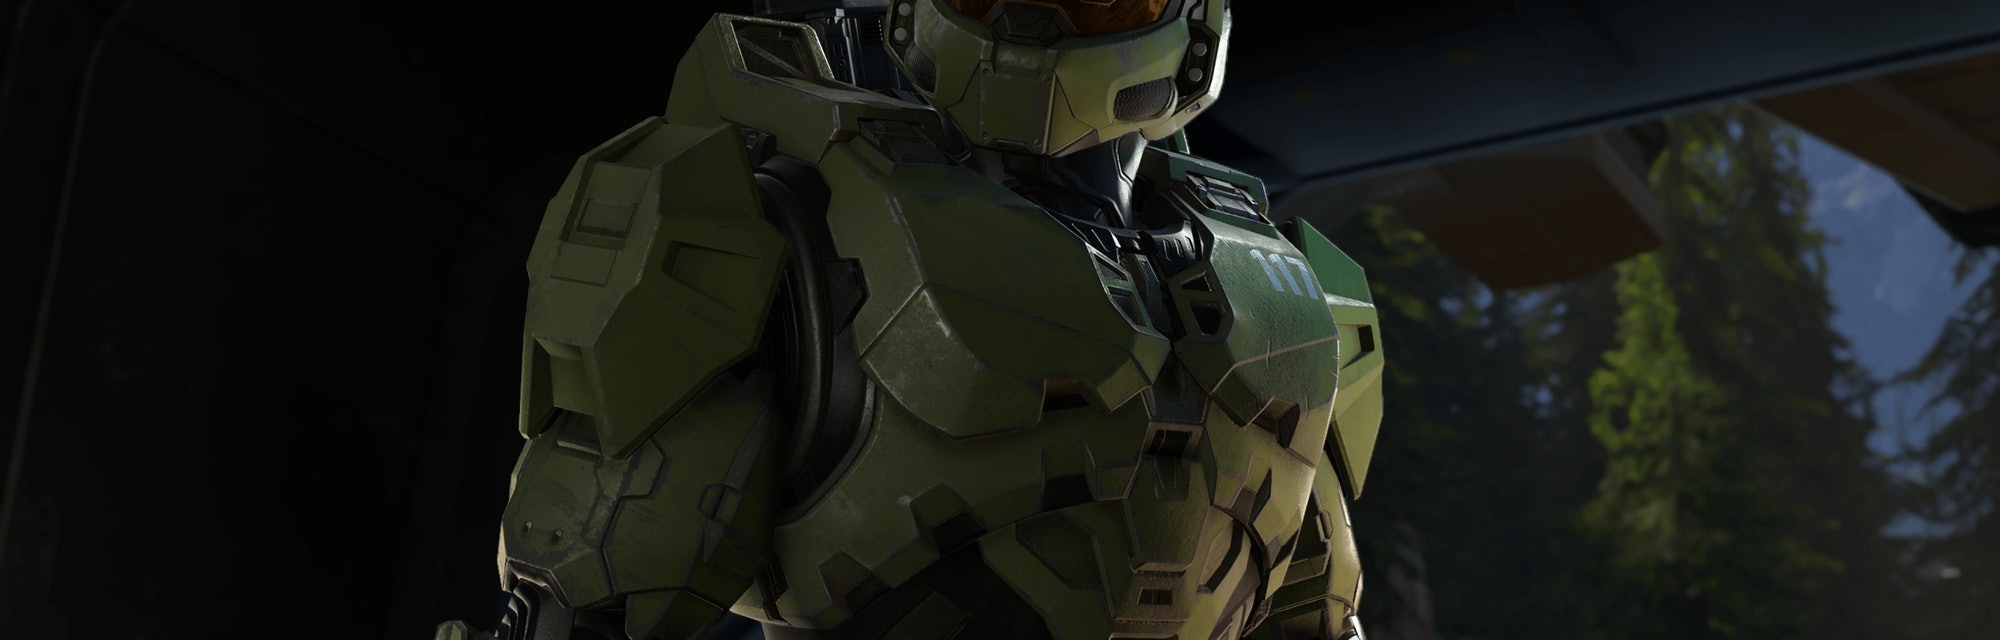 An early 4k screenshot of the Master Chief in Halo Infinite